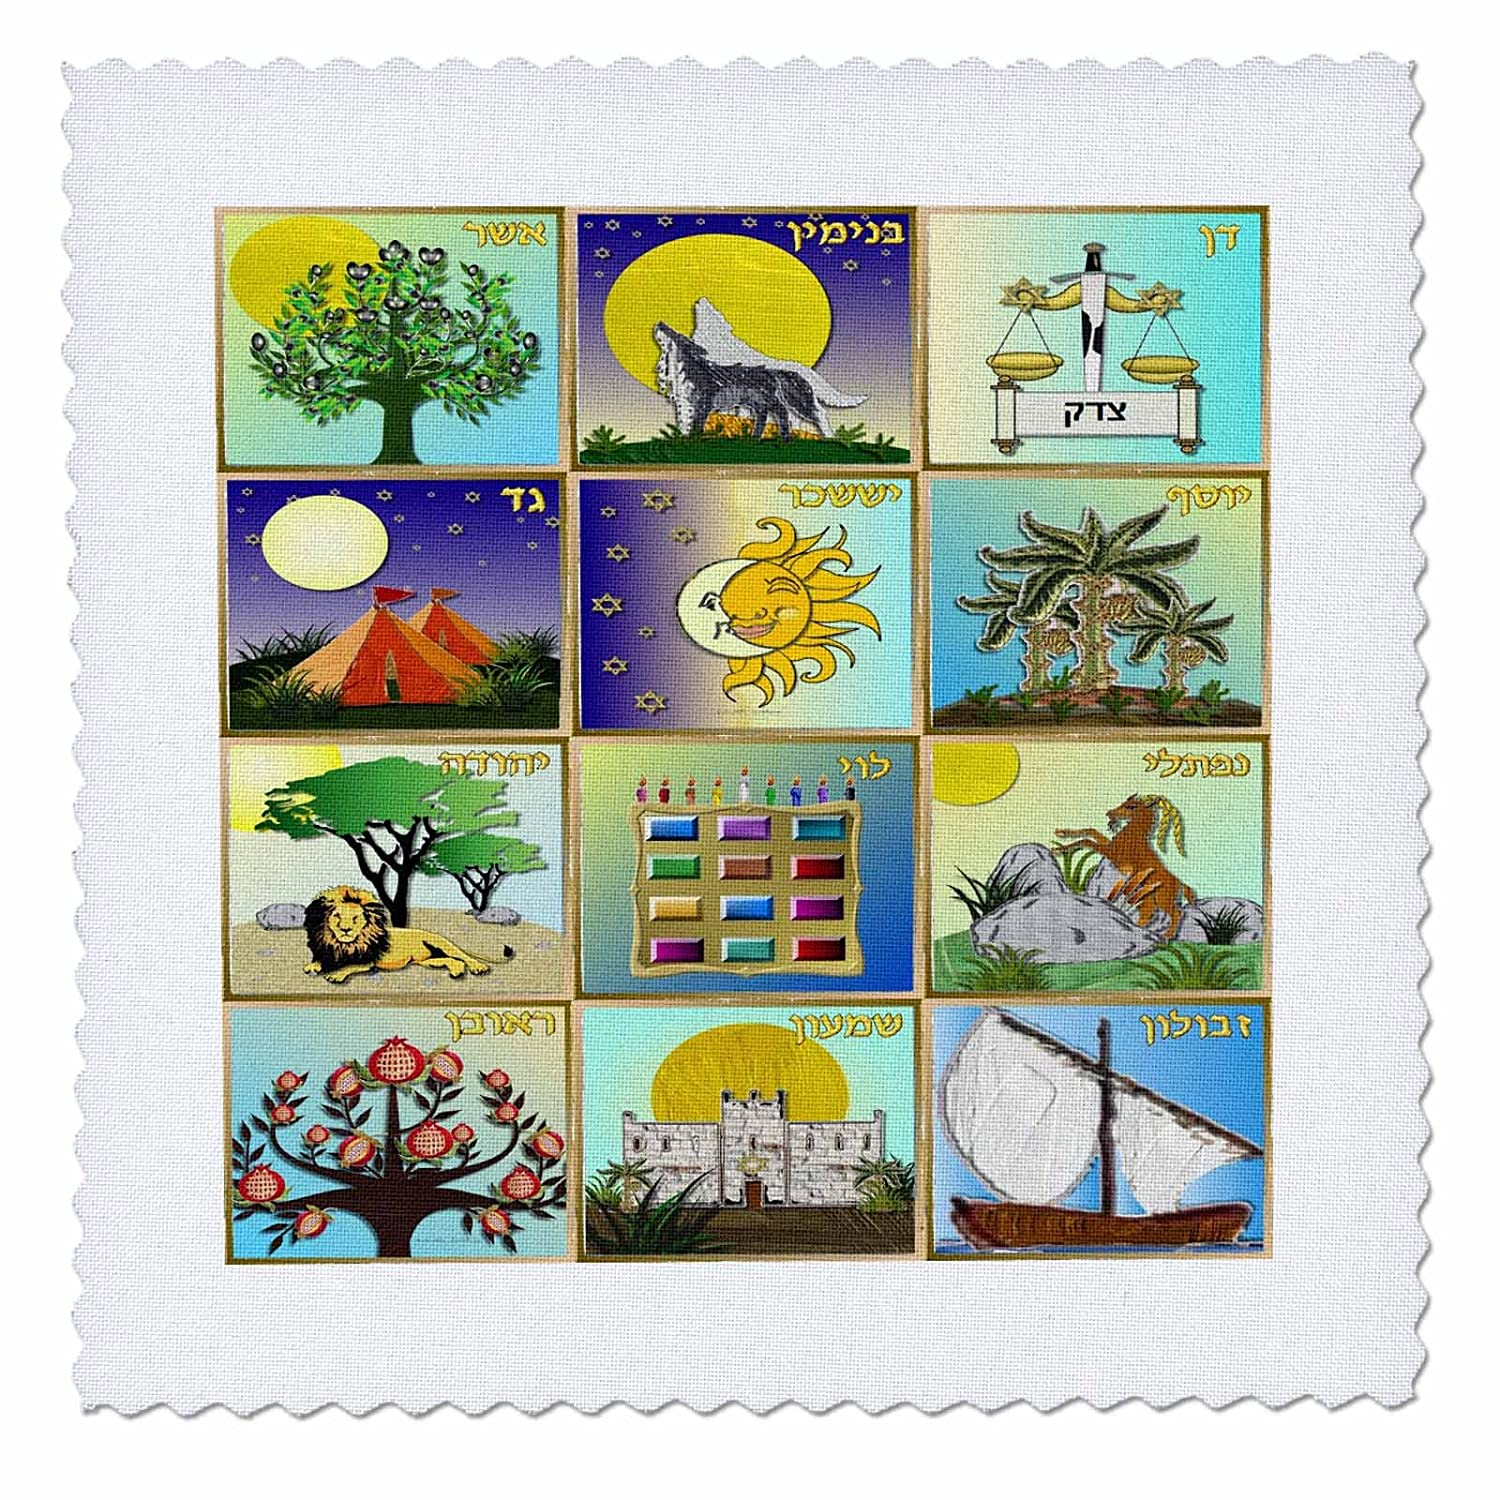 12 Tribes of Israel Art Print 16x16 inch quilt square Lee Hiller Designs Judaica qs/_107255/_6